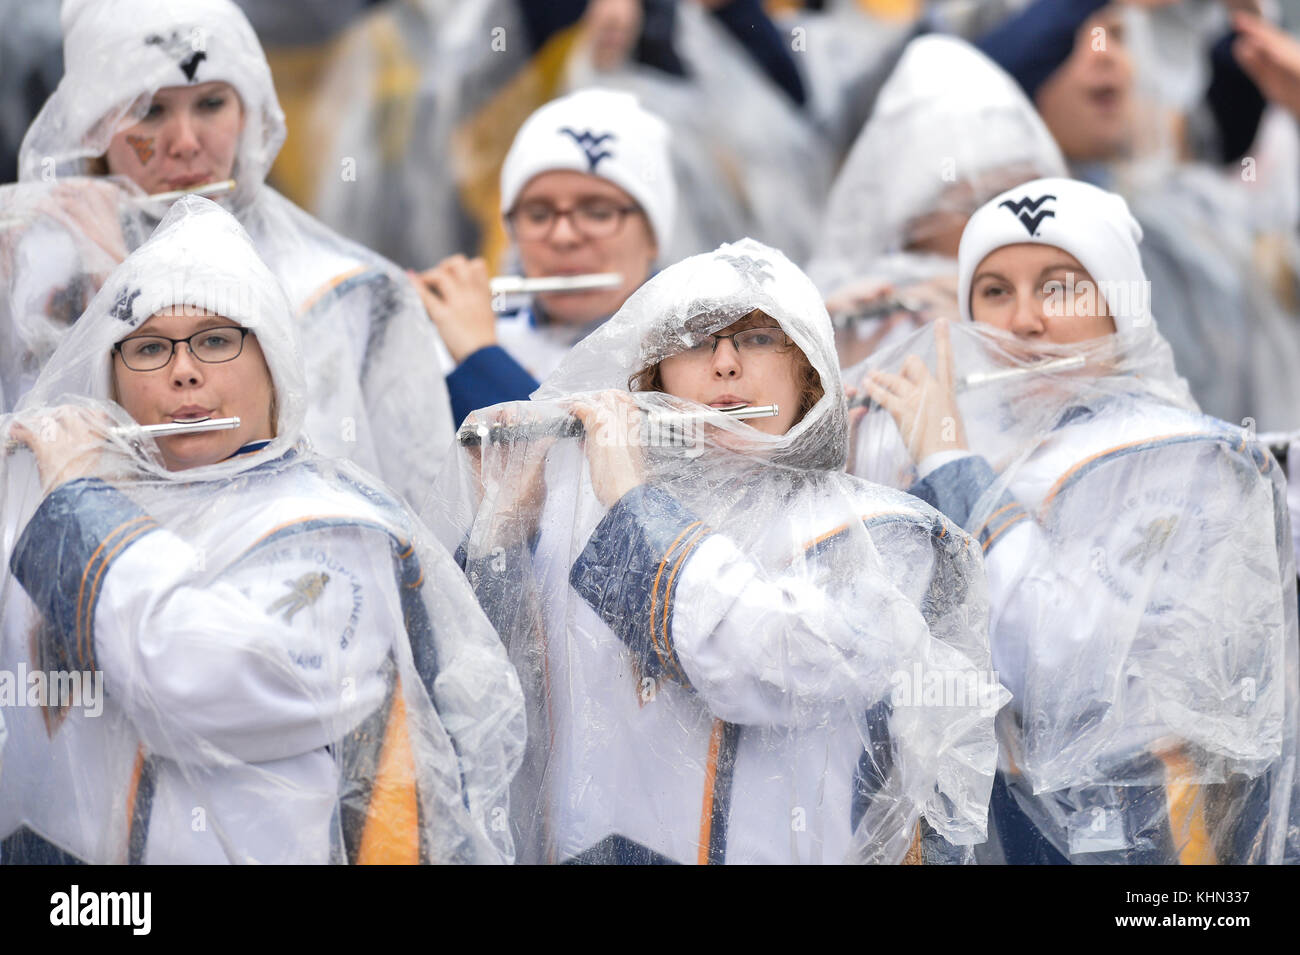 Morgantown, West Virginia, USA. 18th Nov, 2017. West Virginia band members play while wearing ponchos during the - Stock Image